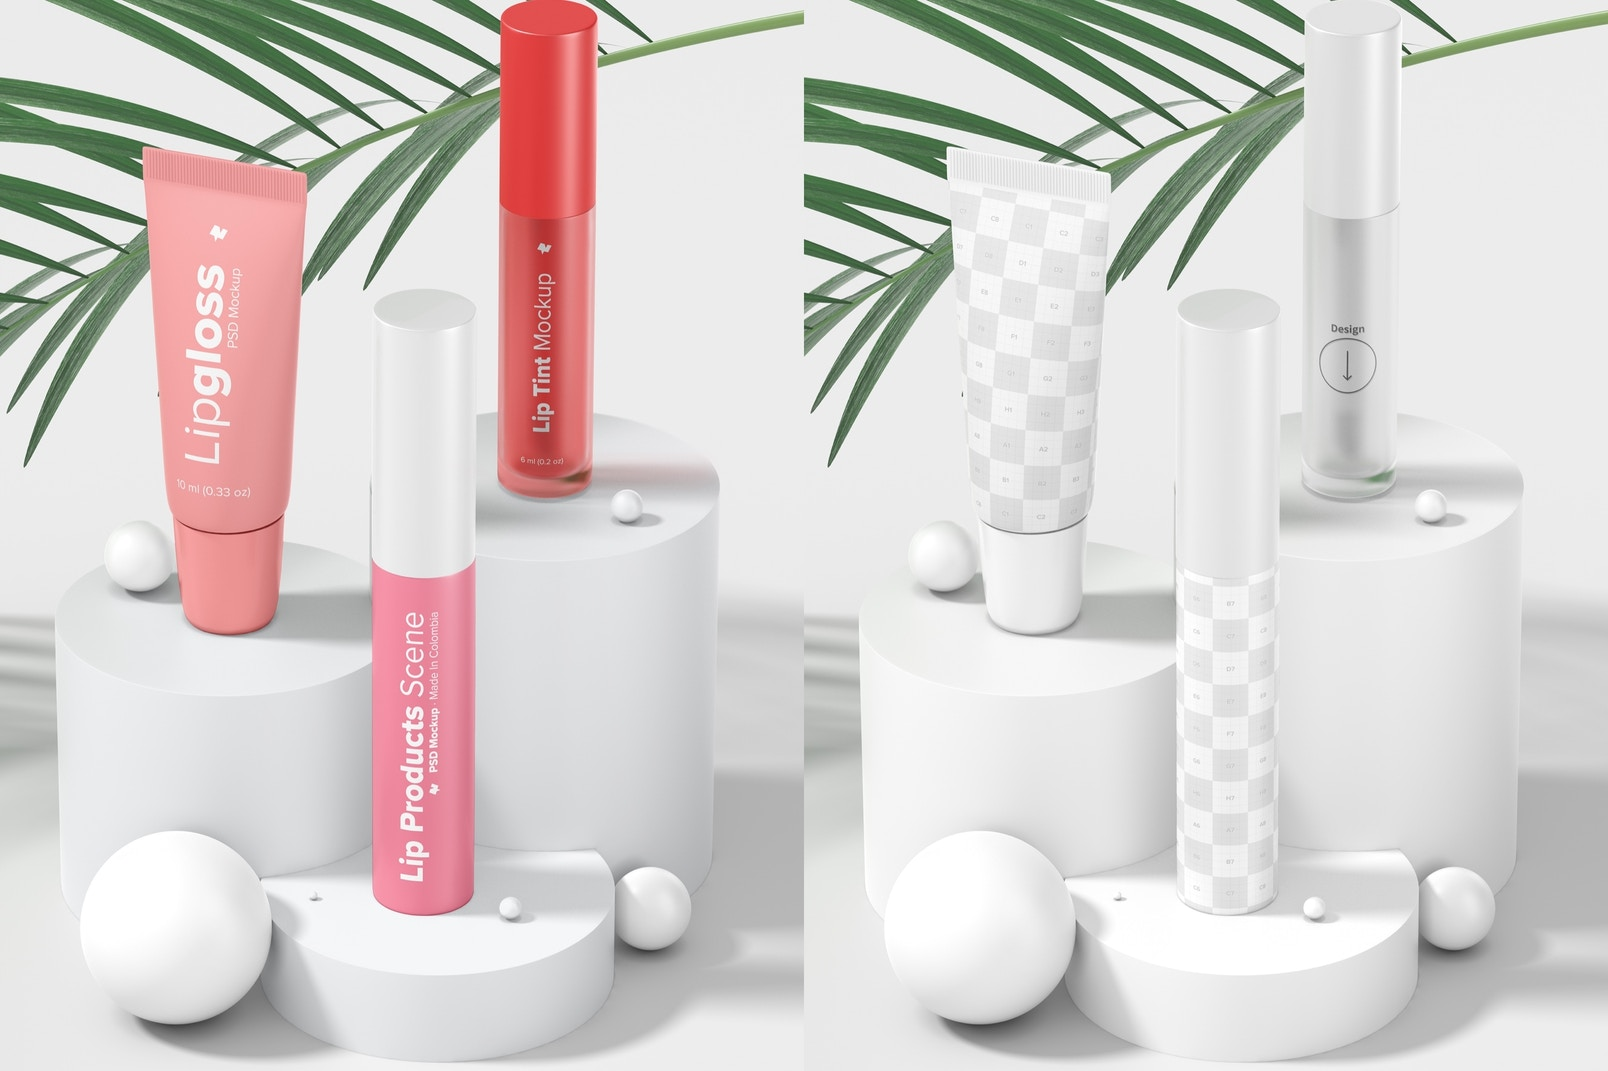 Lip Products Scene Mockup, Perspective View 02